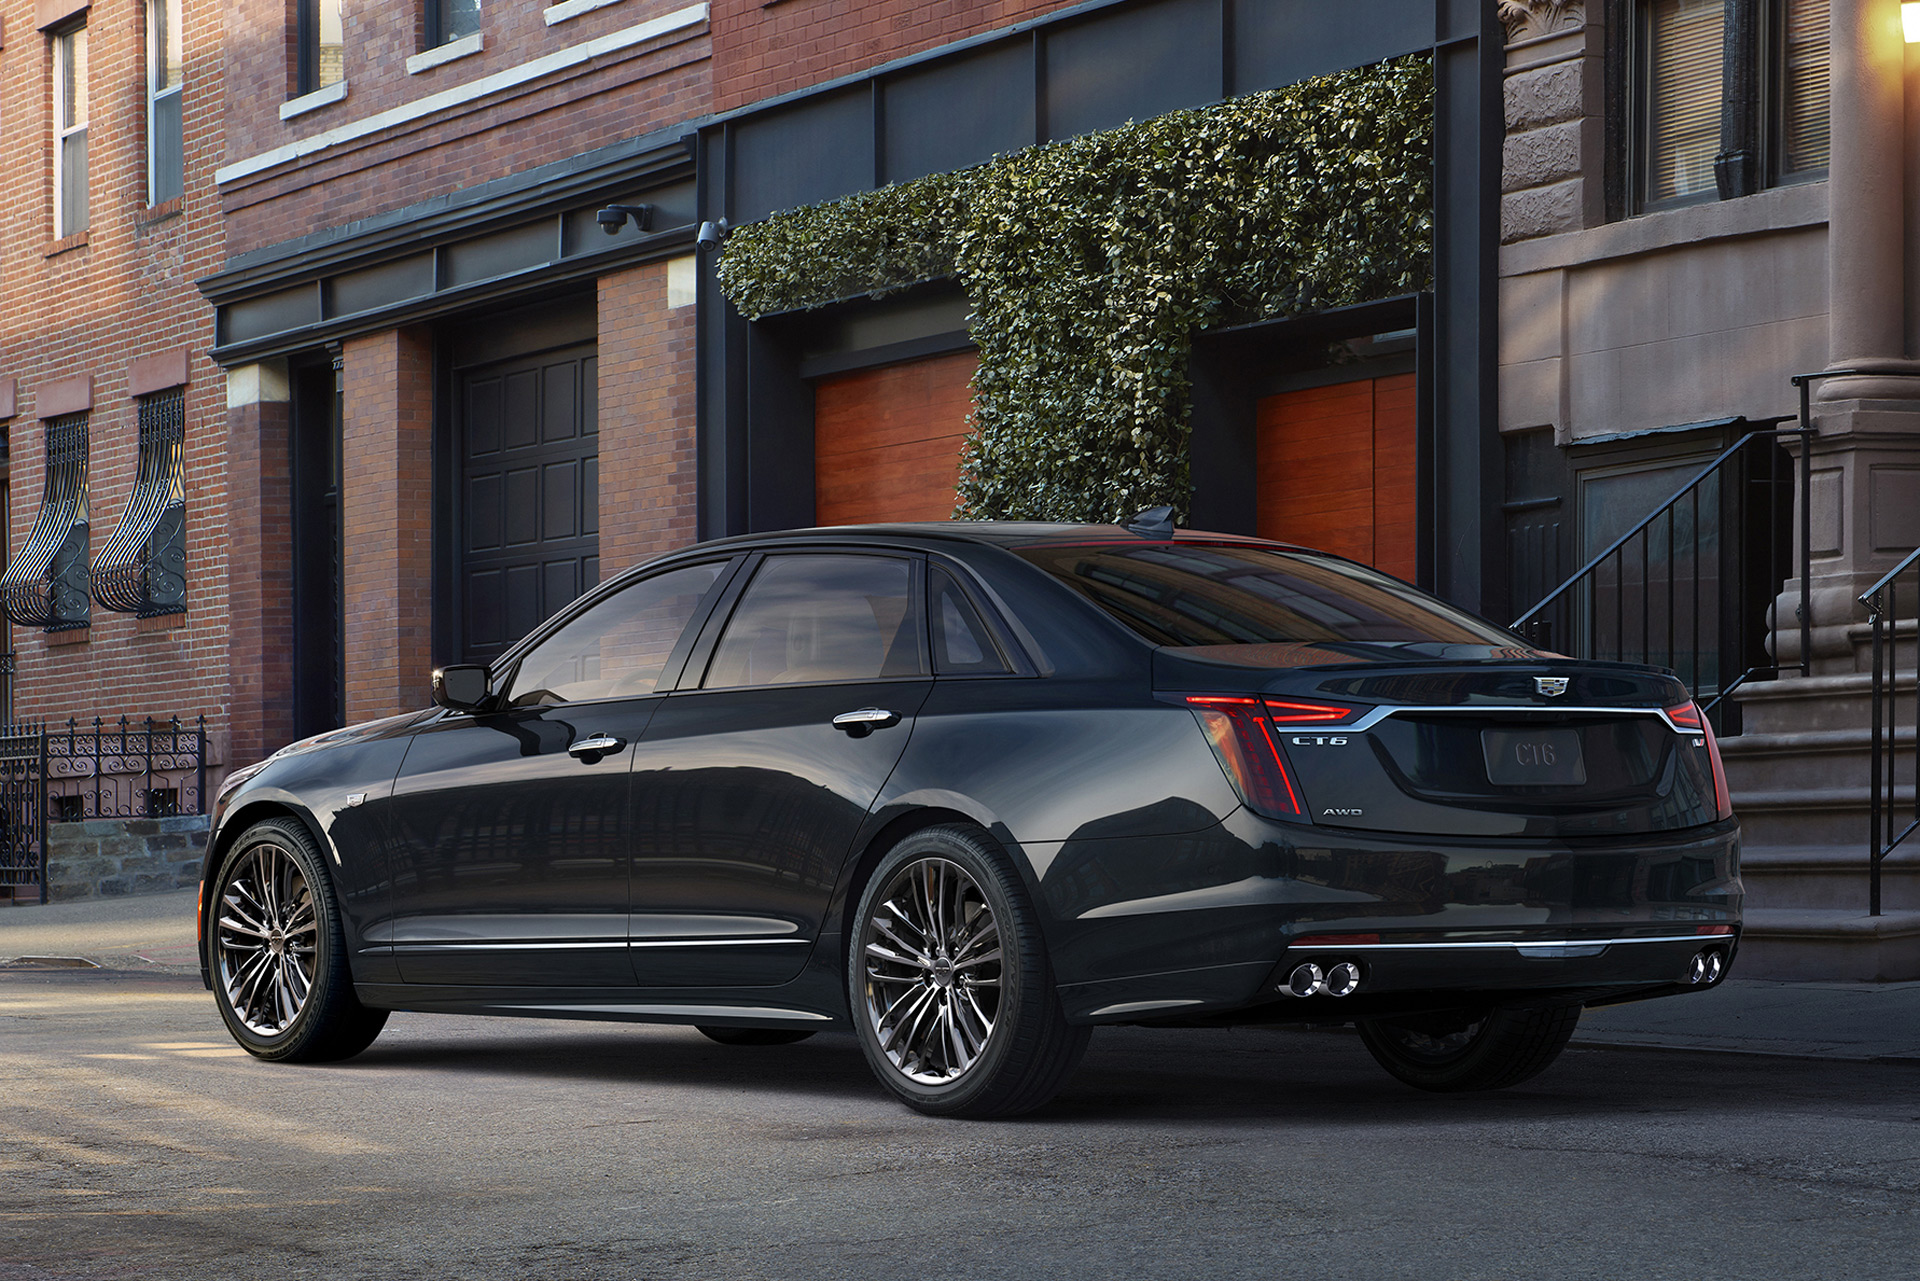 2019 Cadillac Ct6 2020 Ford Bronco 2019 Kia K900 The